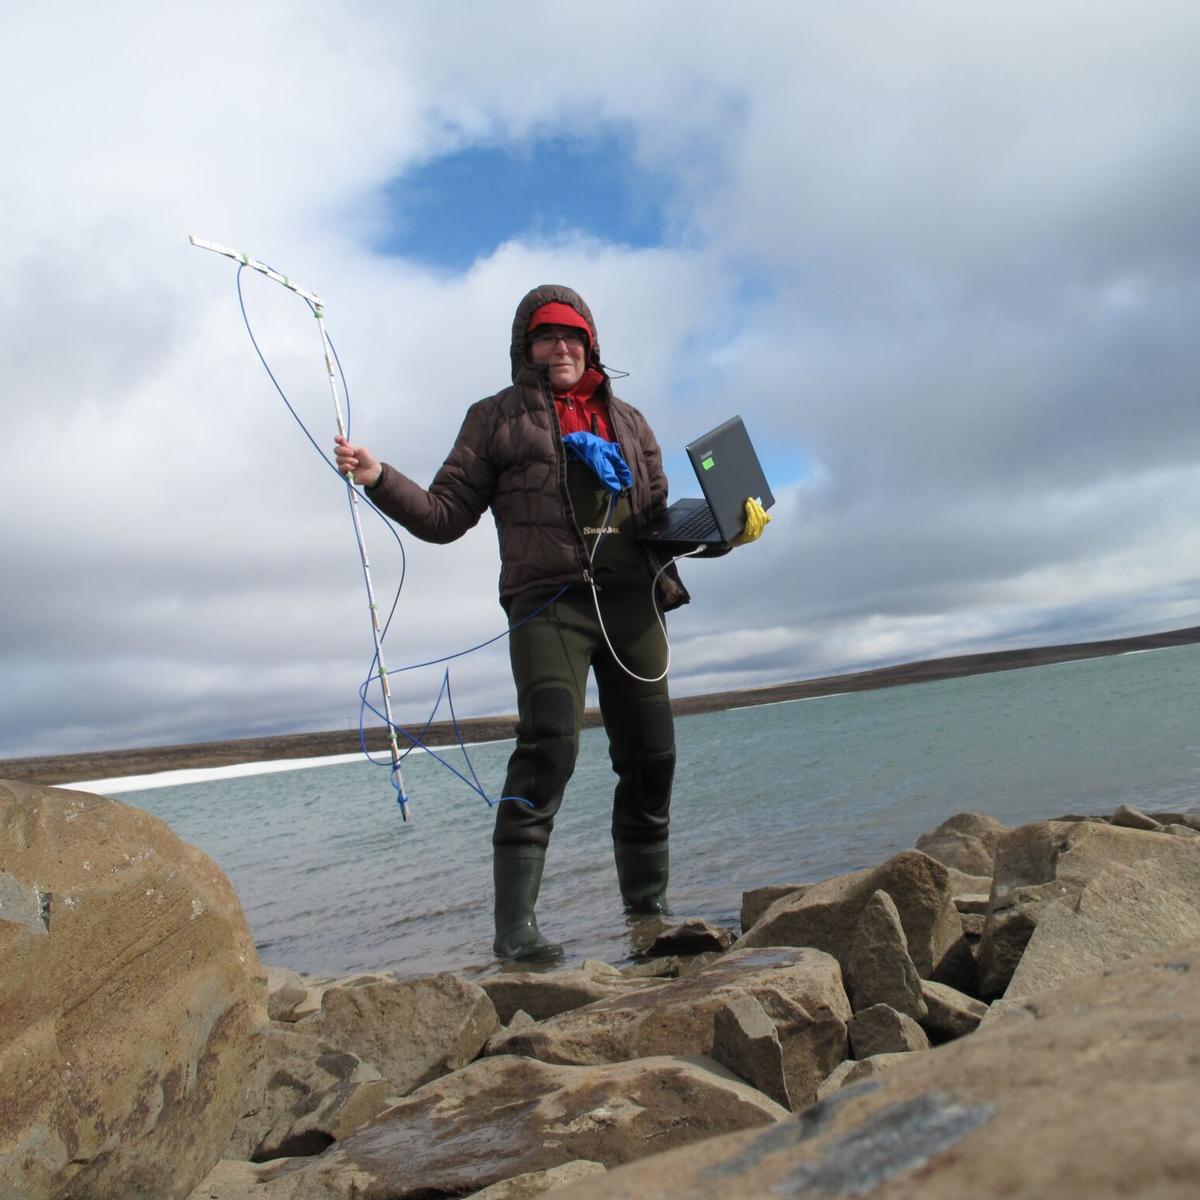 Primary Investigator Jenny Boughman preparing to record data on Þristikla, a glacial lake in the northern highlands. Copyright: Jenny Boughman